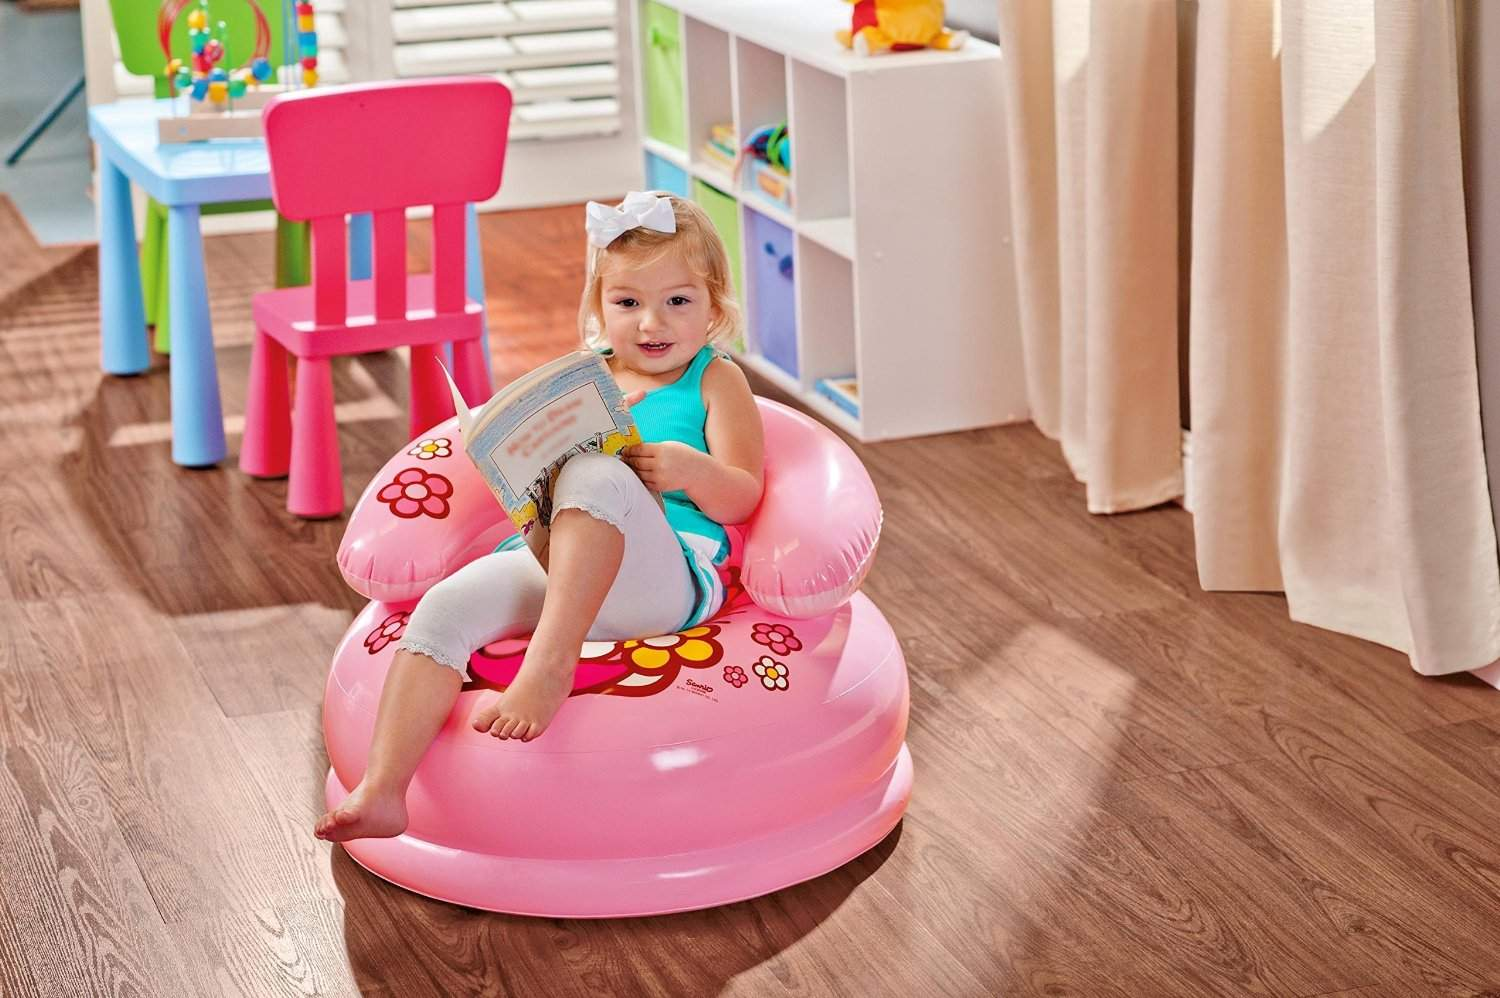 Intex High Quality Intex Hello Kitty Inflatable Chair For Kids And Children - For Ages 3 - 8 Years